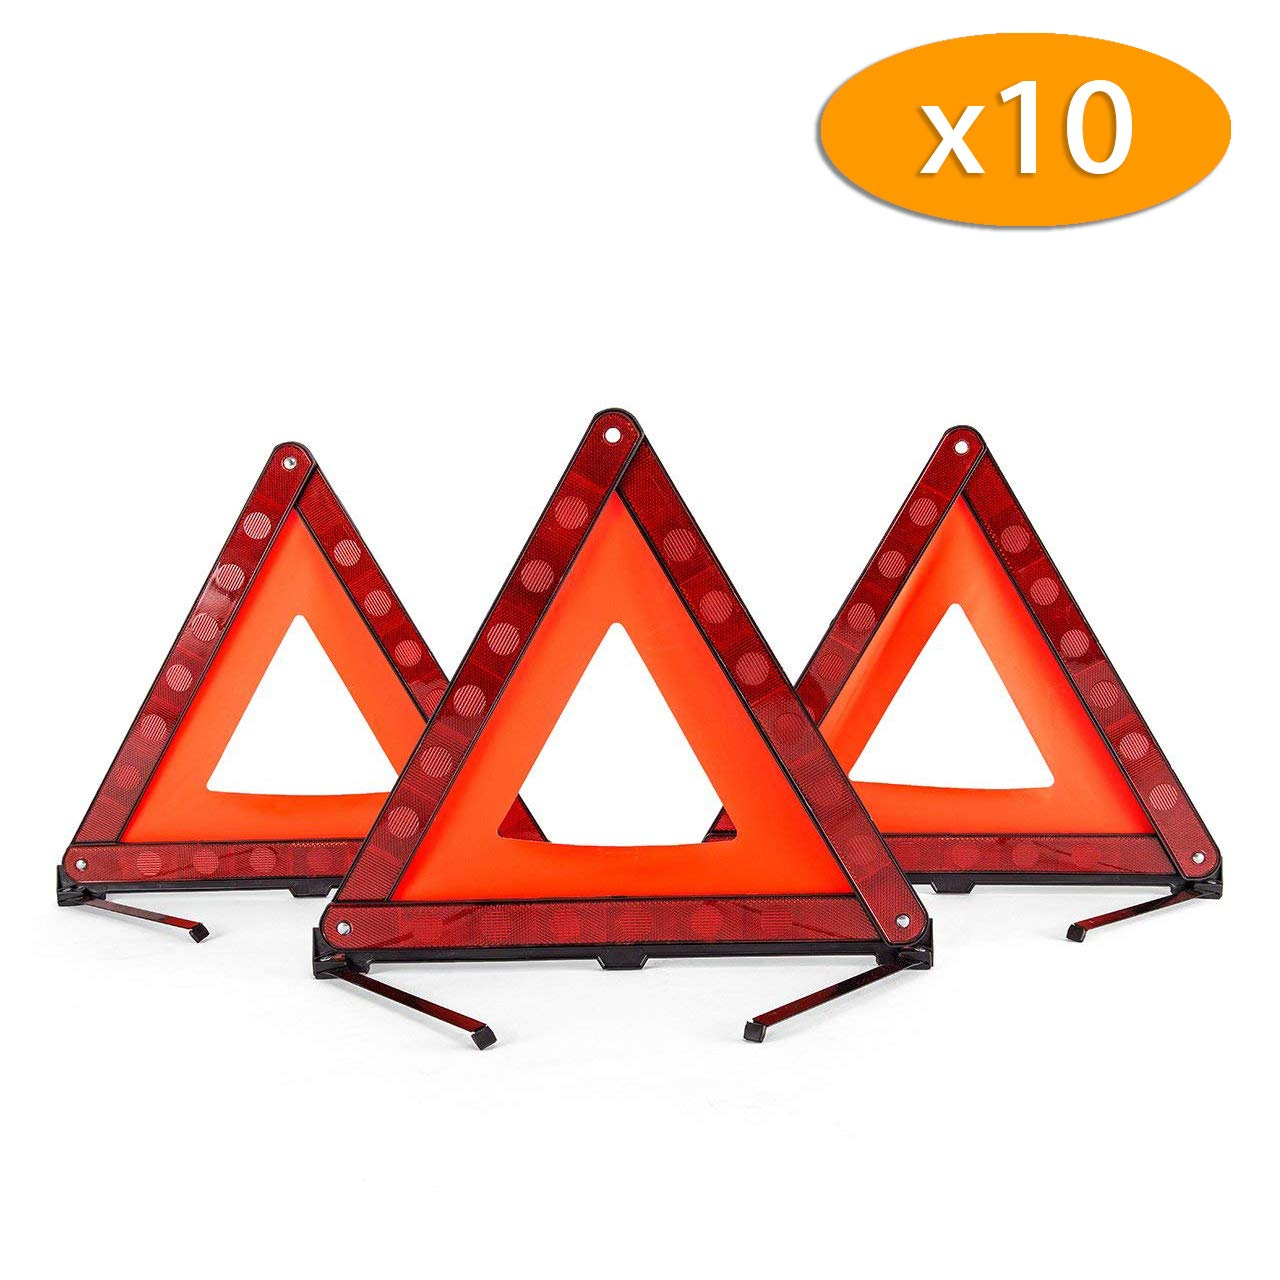 DEDC Warning Triangle Foldable Safety Triangle Triple Warning Kit Warning Triangle Reflector Roadside Hazard Sign Triangle Symbol for Emergency with Storage Bag (30 Pack) by DEDC